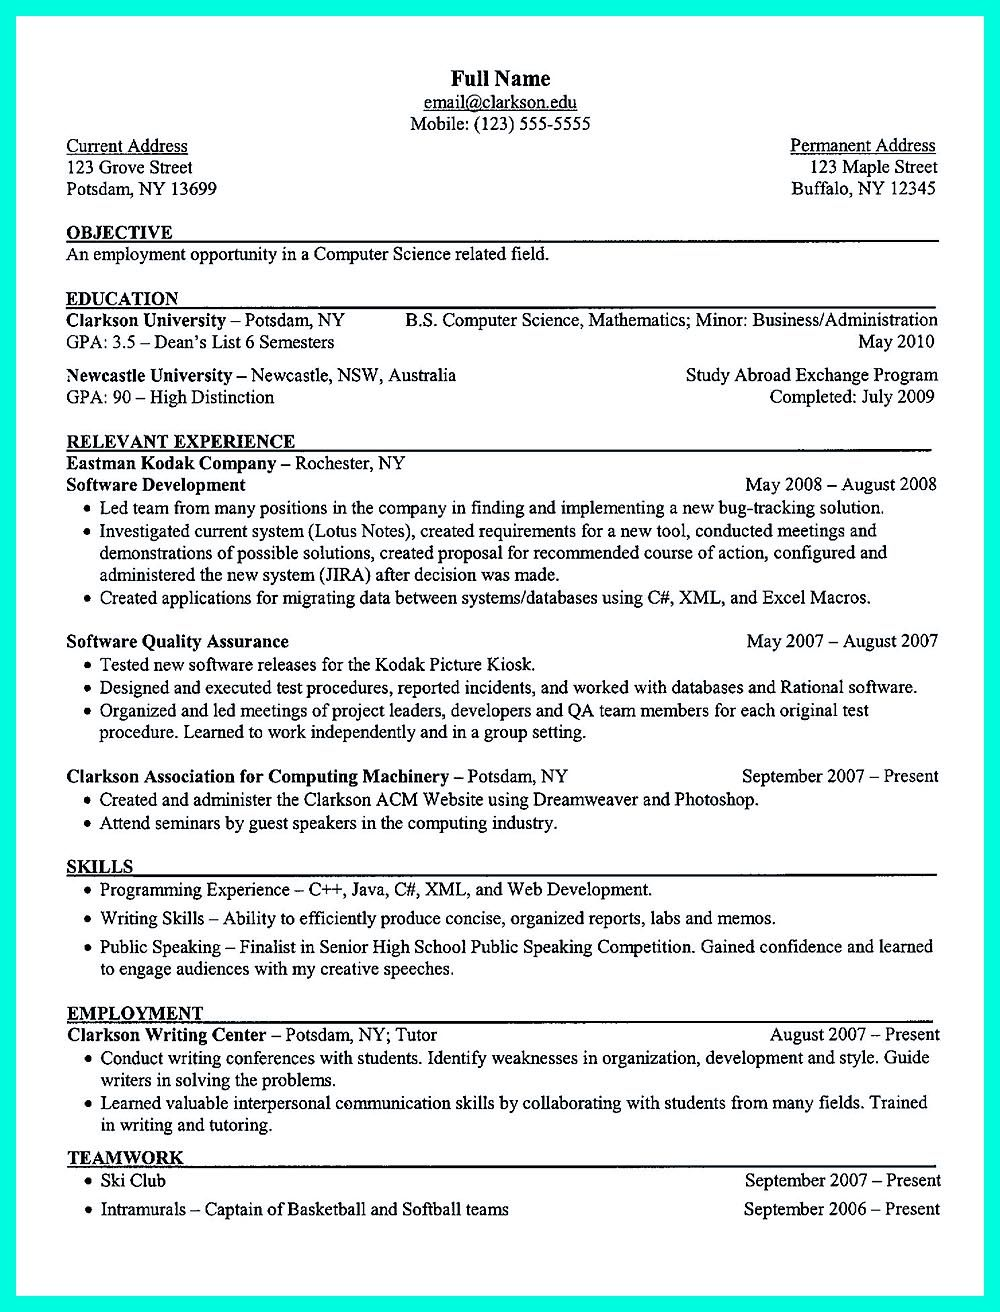 Pin On Resume Sample Template And Format Pinterest Computer Science